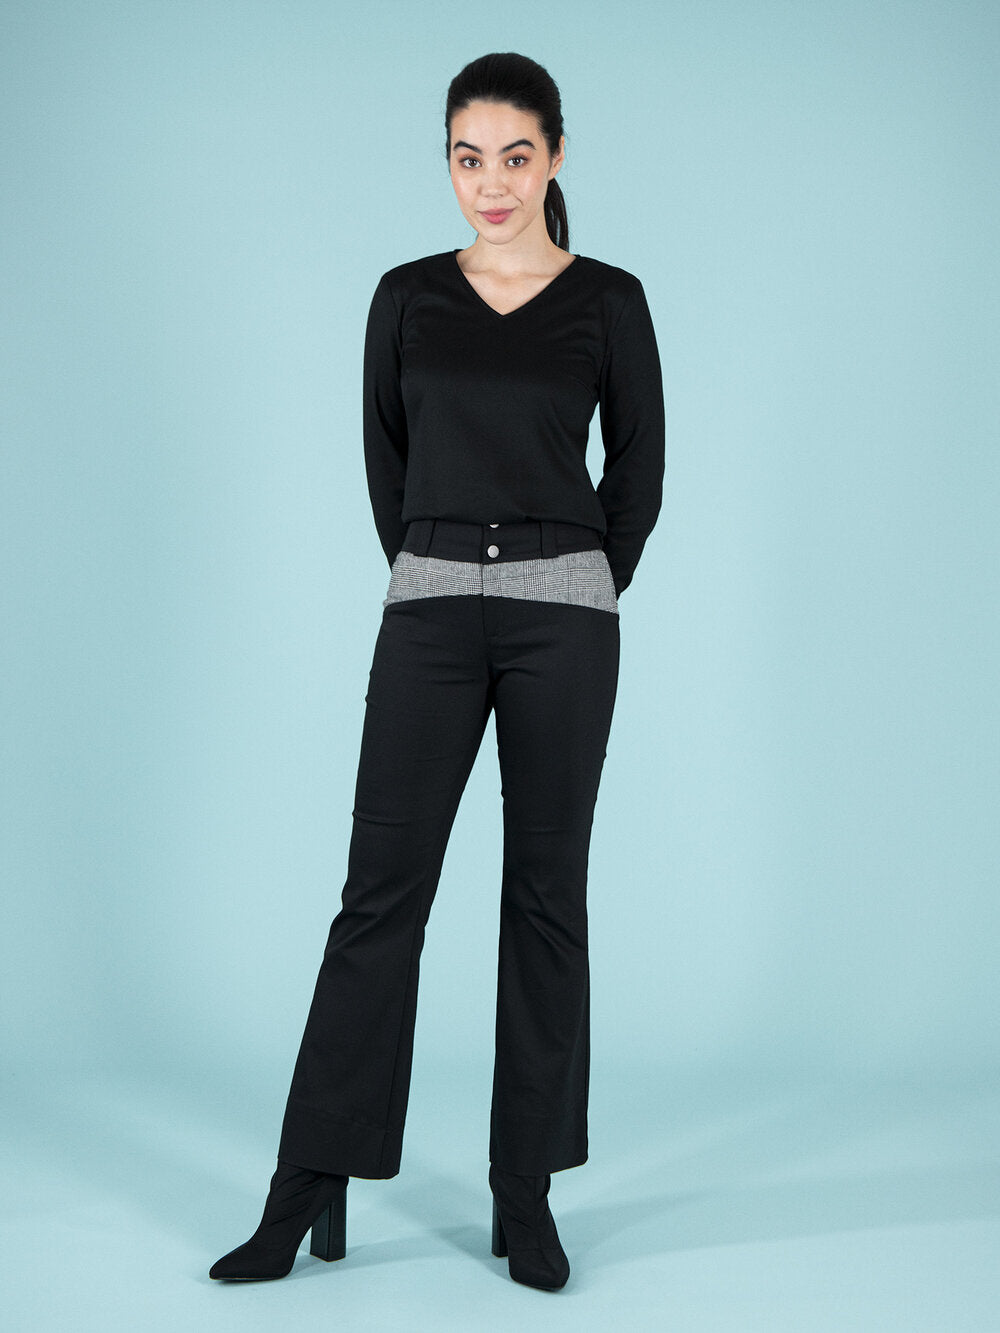 Frontshot of a woman wearing a black sustainable blouse and flared troursers with checker elements